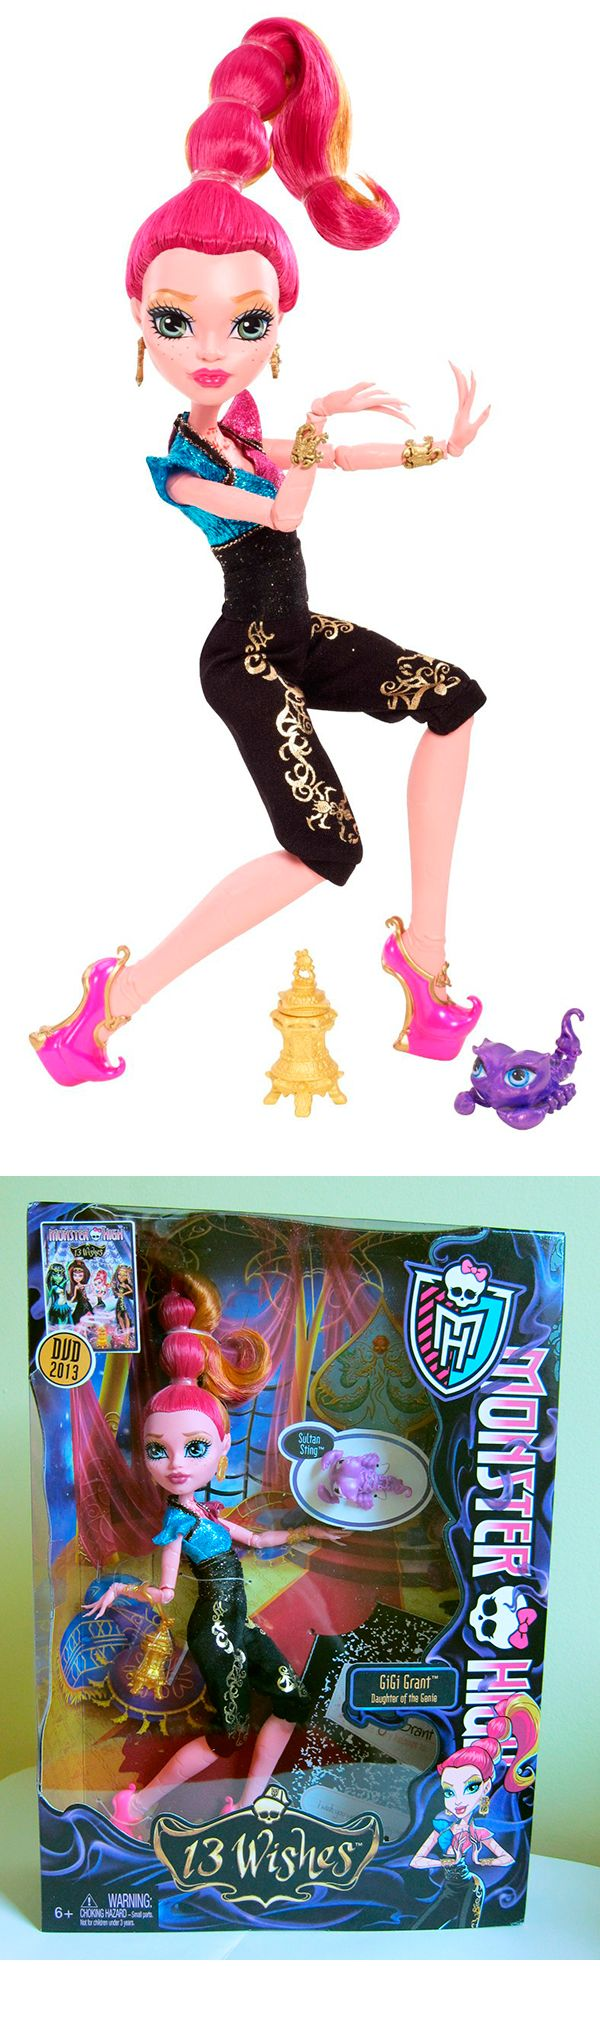 Monster High 13 Wishes Gigi Grant Doll, Daughter of the Genie.